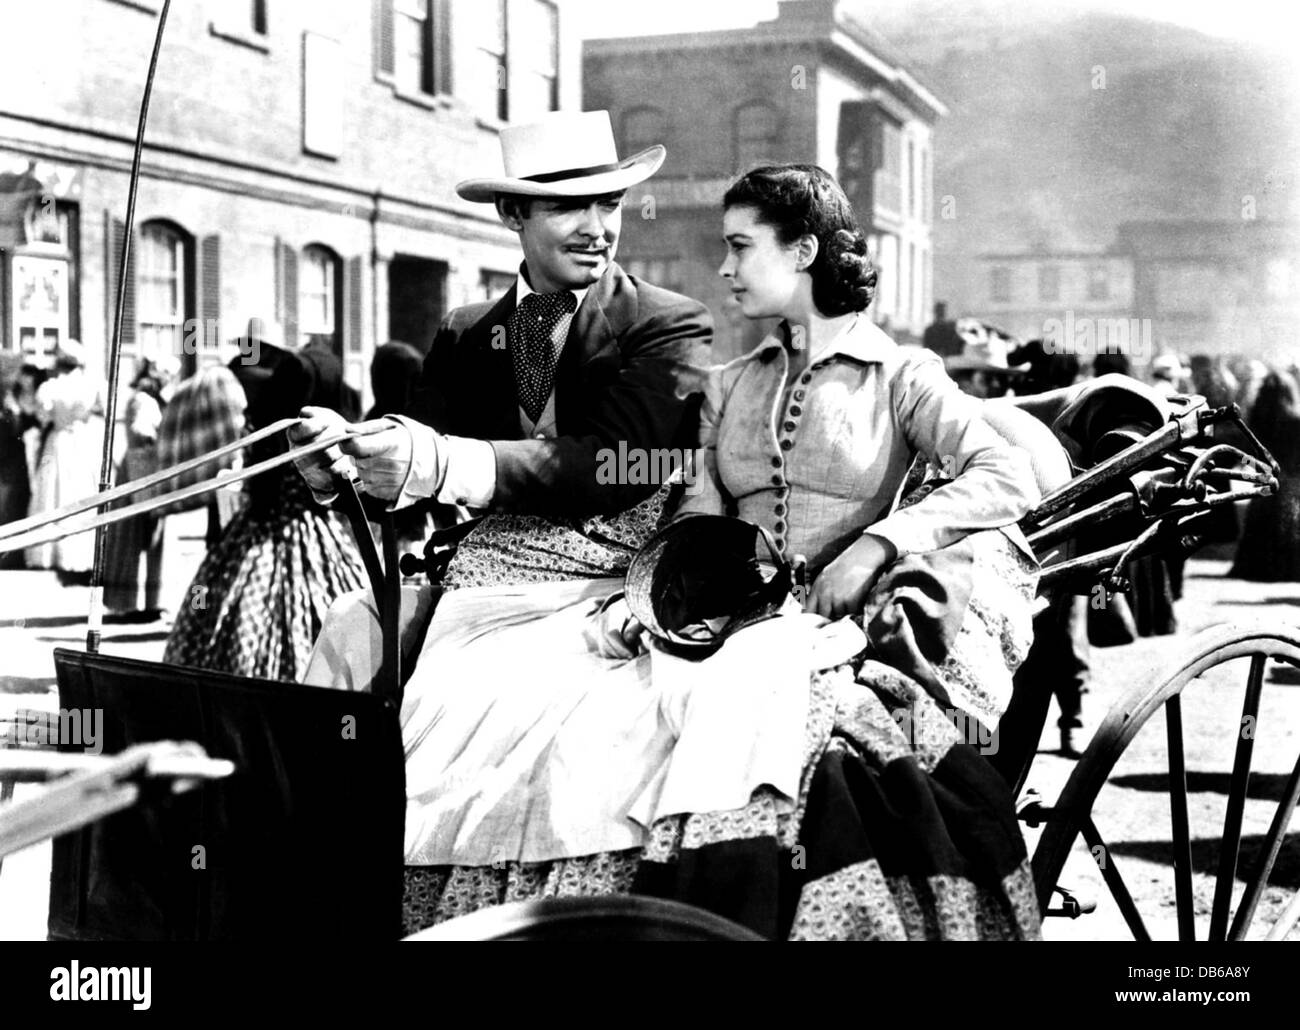 a film analysis of gone with the wind directed by victor fleming george cukor and sam wood Three weeks after shooting started in the spring of 1939, the director, george cukor, was taken off and victor fleming, a close friend of gable, was given the job fleming died a few weeks before completion and sam wood was rushed in to finish the film.